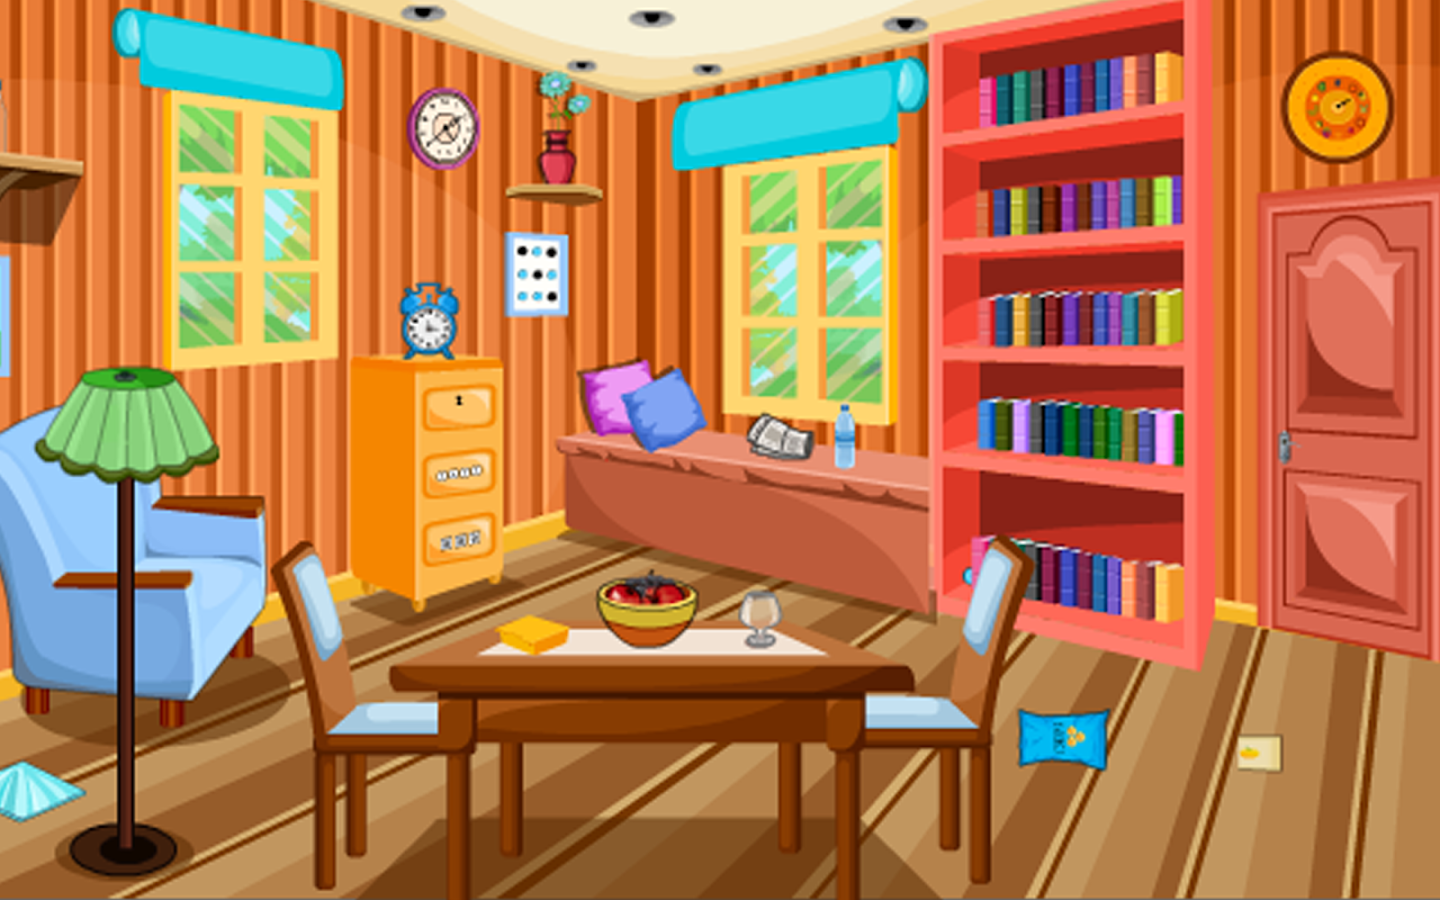 Escape Puzzle Dining Room Android Apps on Google Play : vOVYbDaV0xUwikkRQwla0YMofnNpSOJcZgZ46Fl68VLRHKNKJc0gUEg0WZJPT2kZxIh900 from play.google.com size 1440 x 900 png 725kB